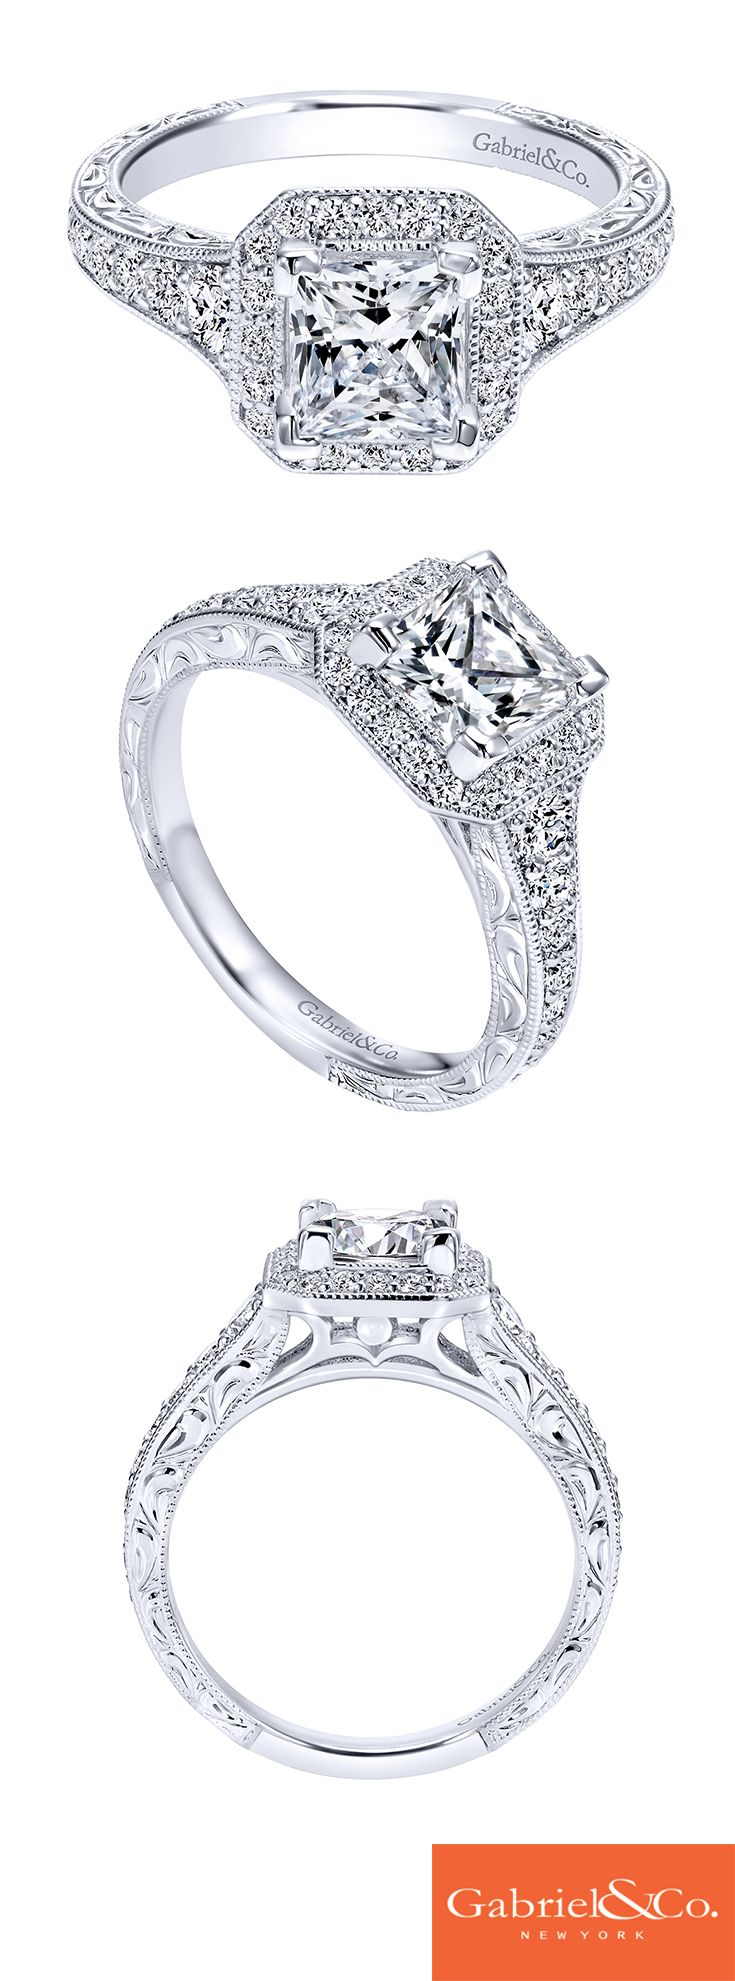 Gabriel & Co. - Voted #1 Most Preferred Bridal Brand. This 14k White Gold Diamond Halo Engagement Ring is the perfect proposal ring. Discover your dream engagement ring here or customize your own.